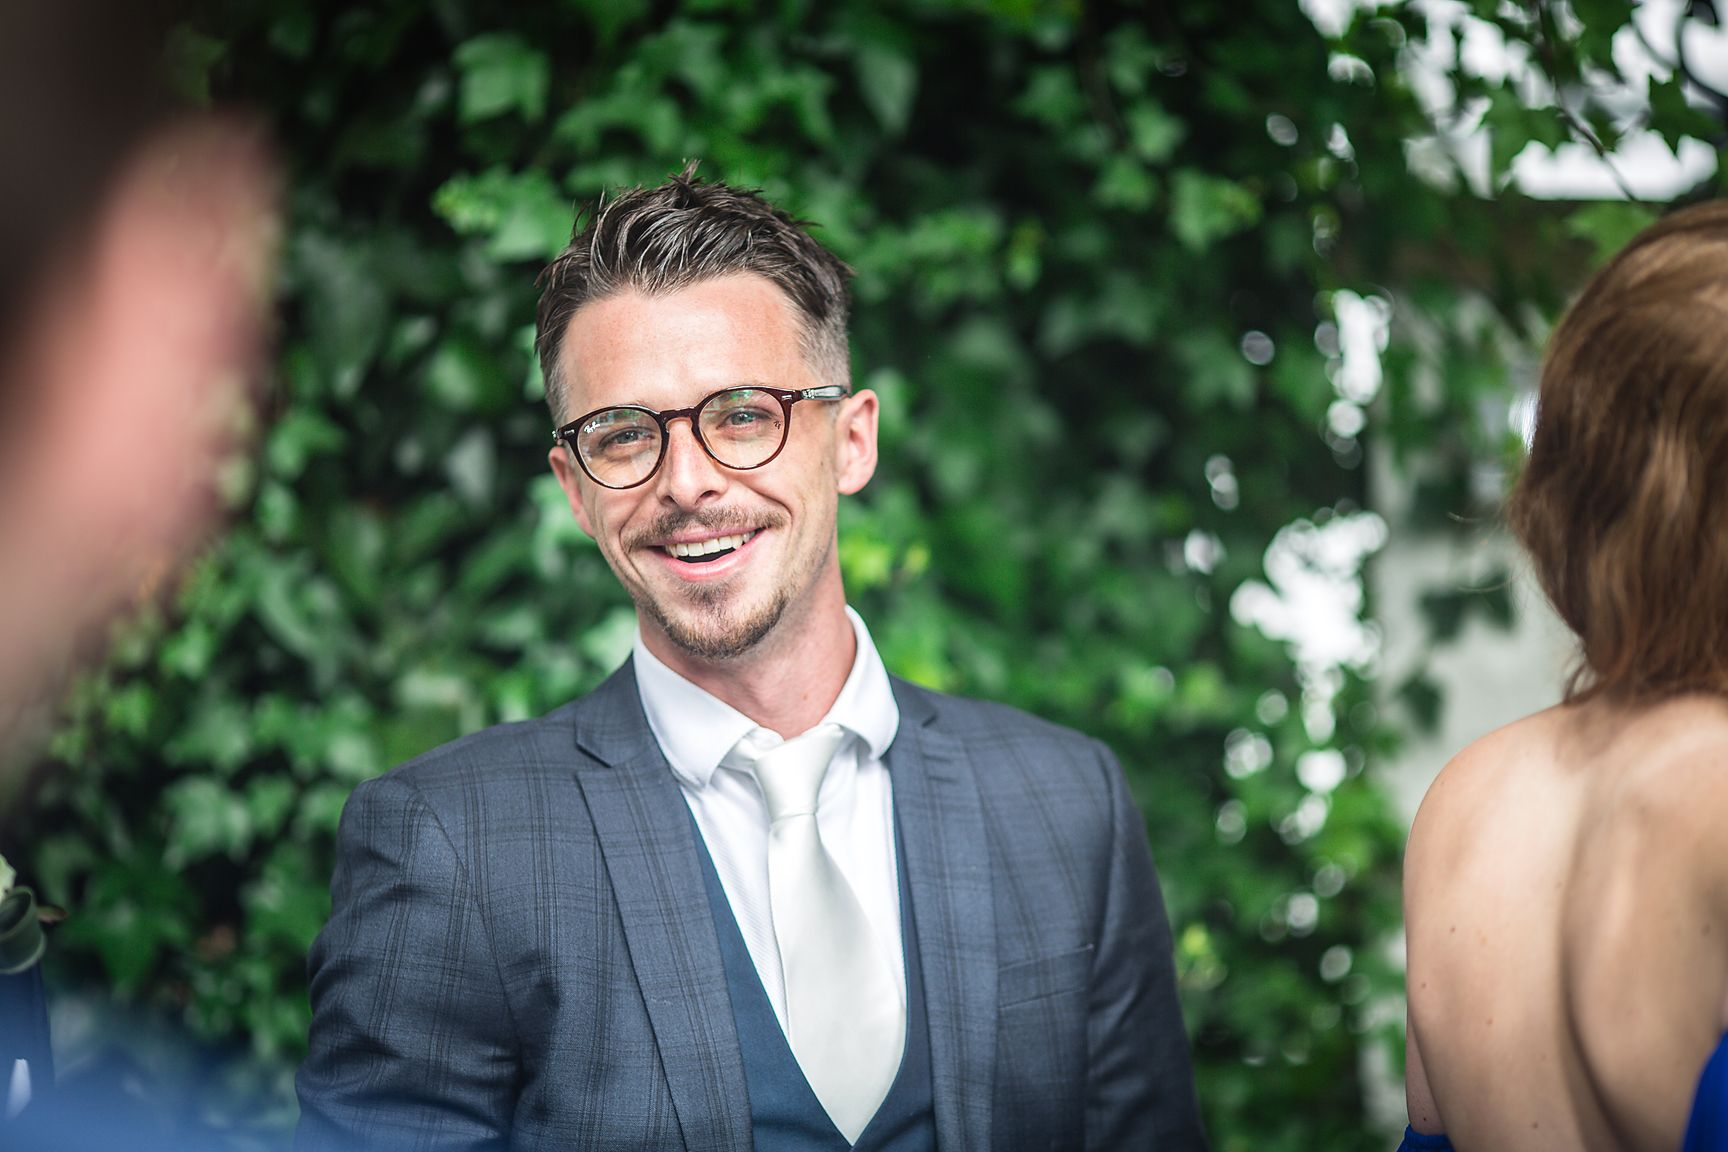 Cheshire wedding photographer photo of smiling male guest outdoors